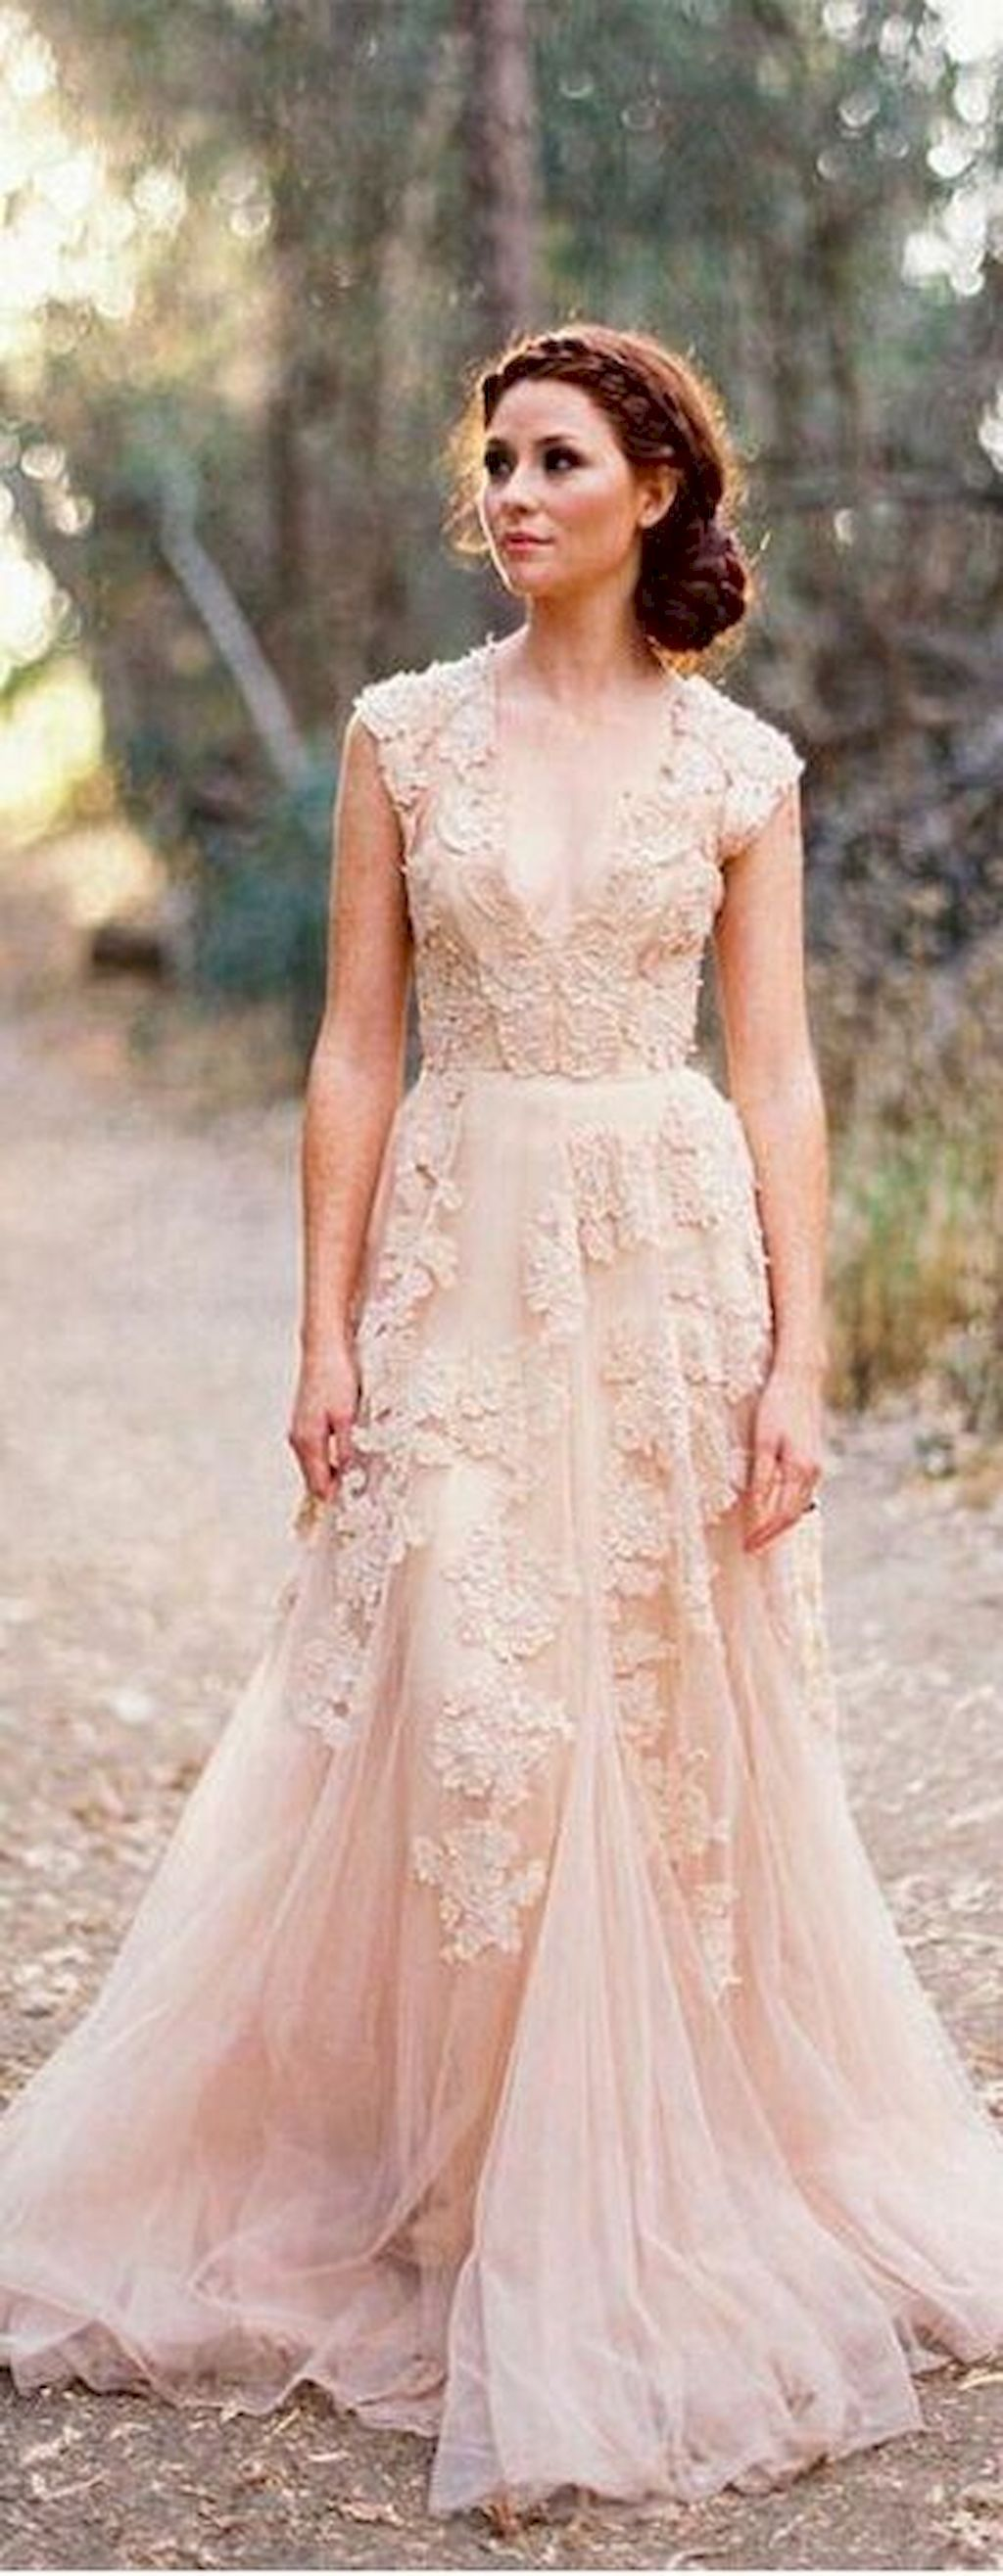 46 Elegant Vow Renewal Country Wedding Dresses Ideas | Country ...